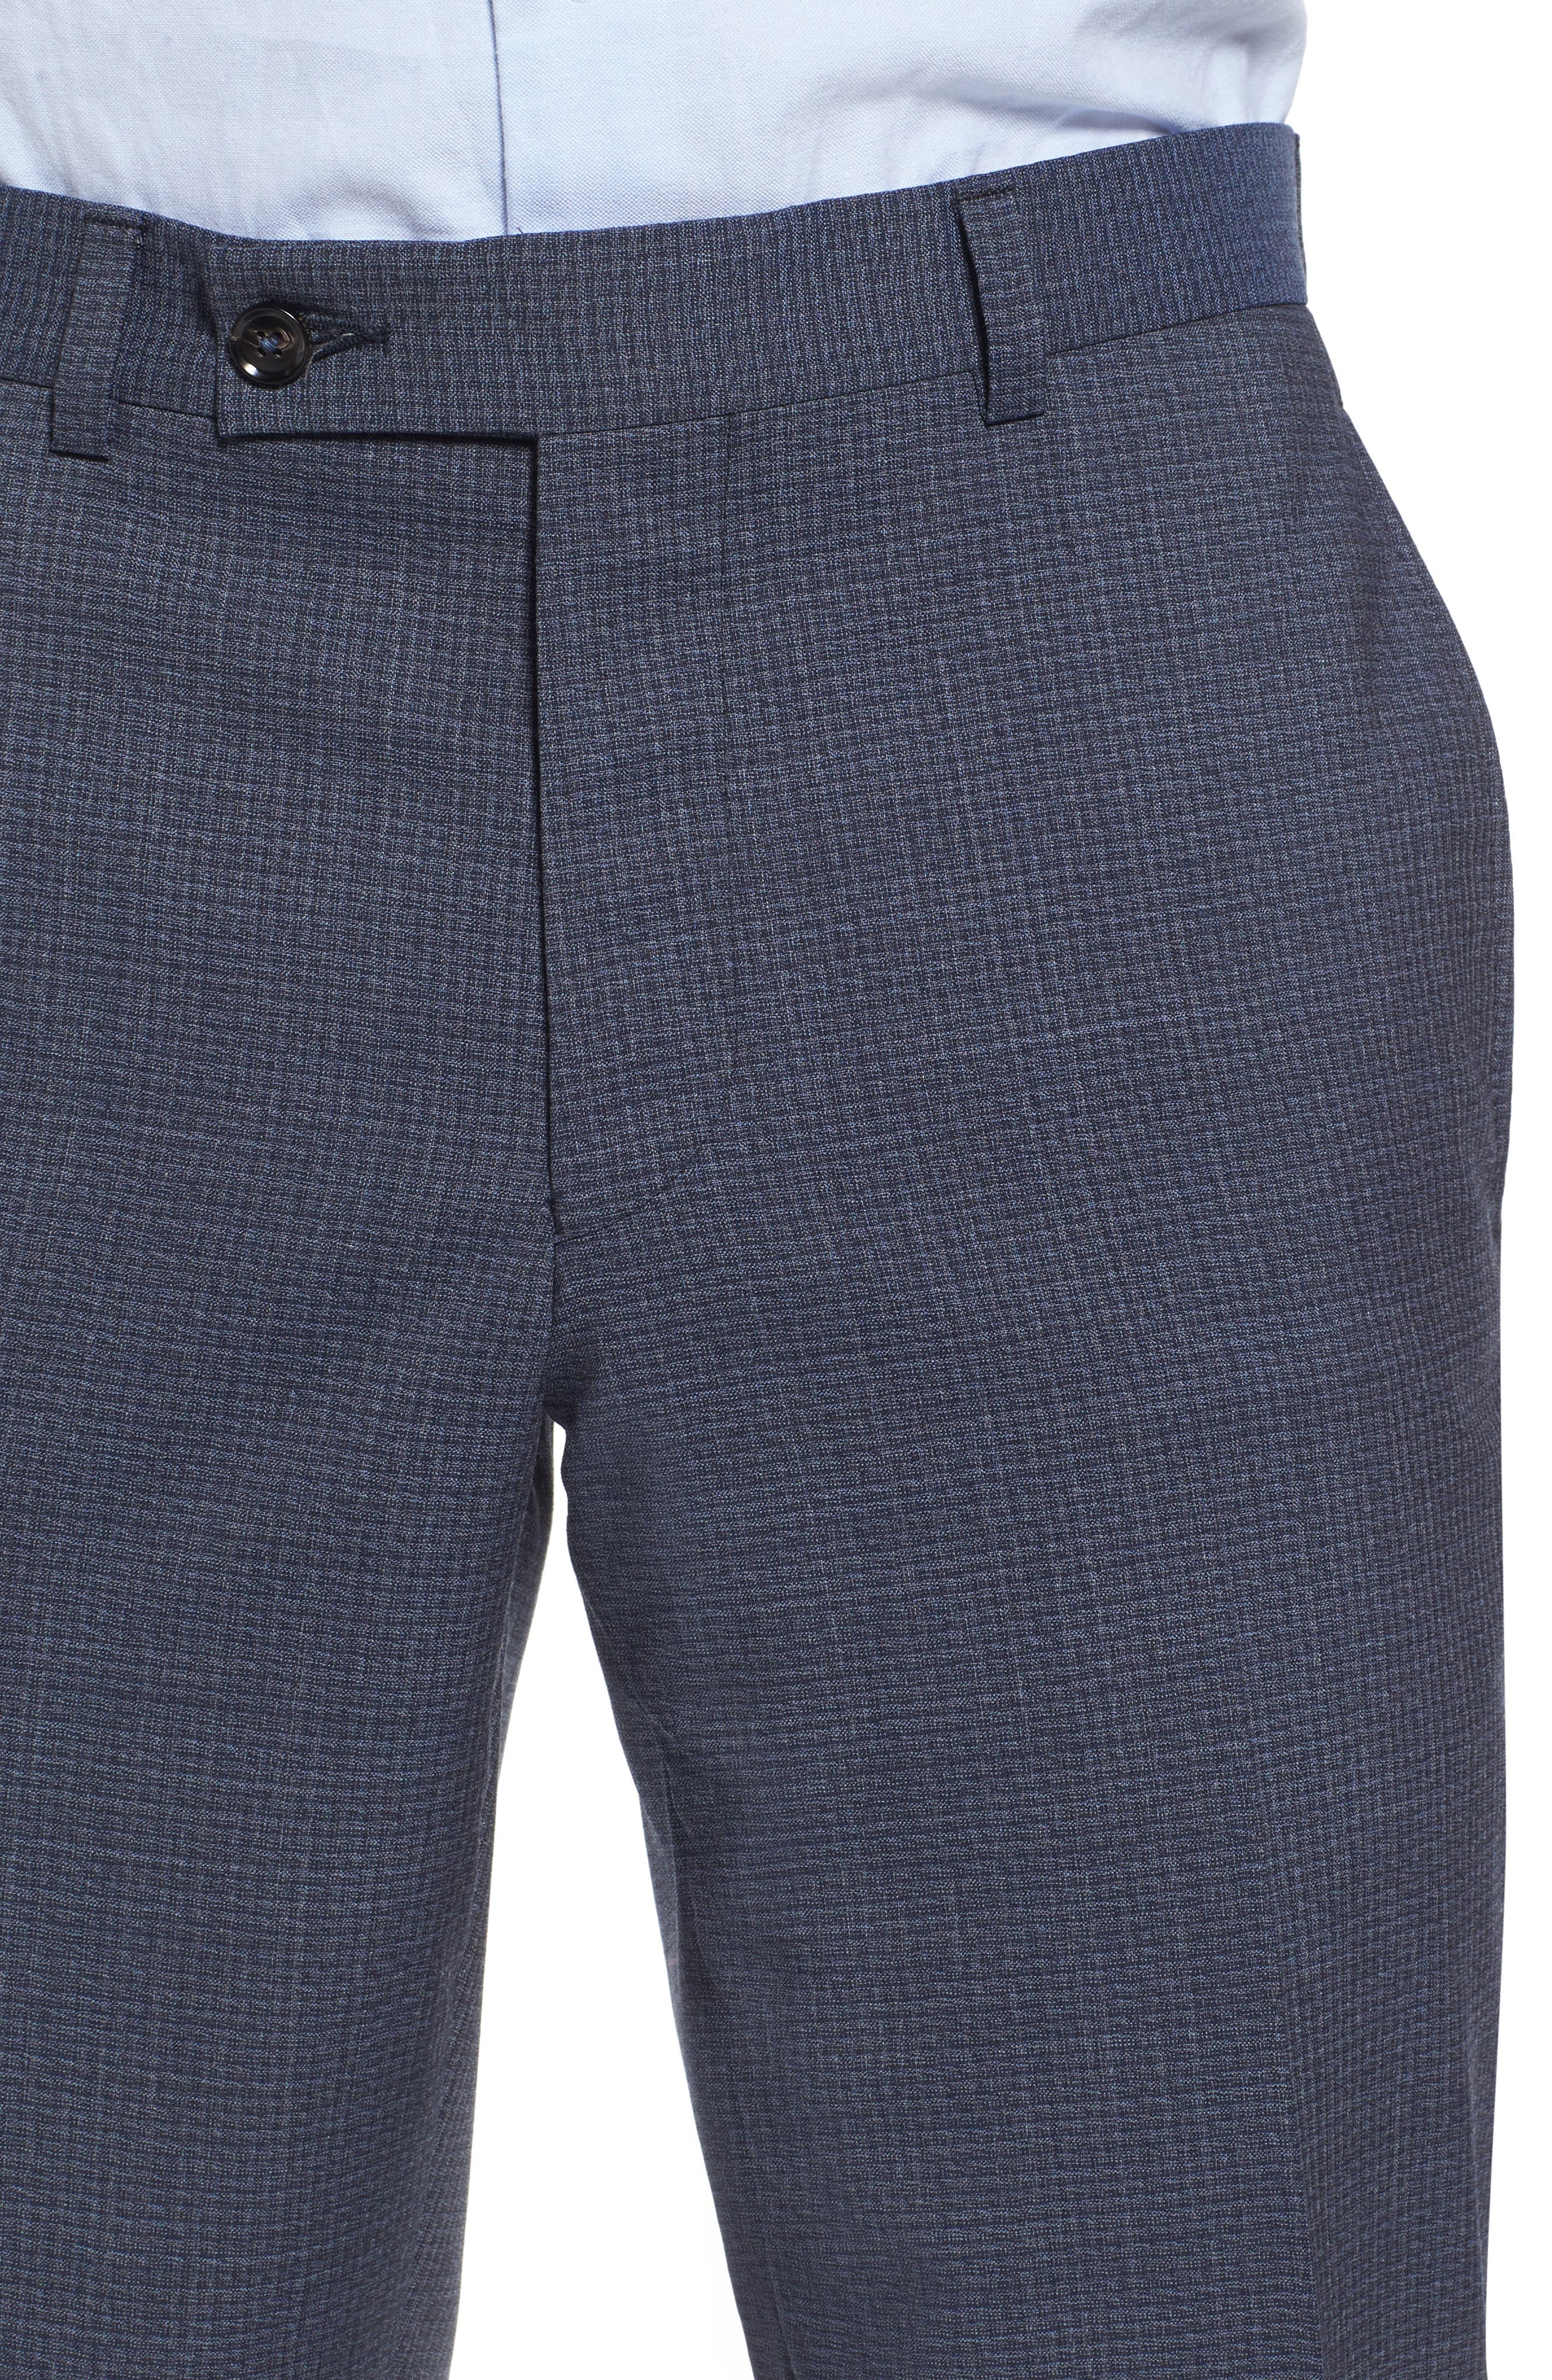 Flat Front Check Wool Trousers,                             Alternate thumbnail 5, color,